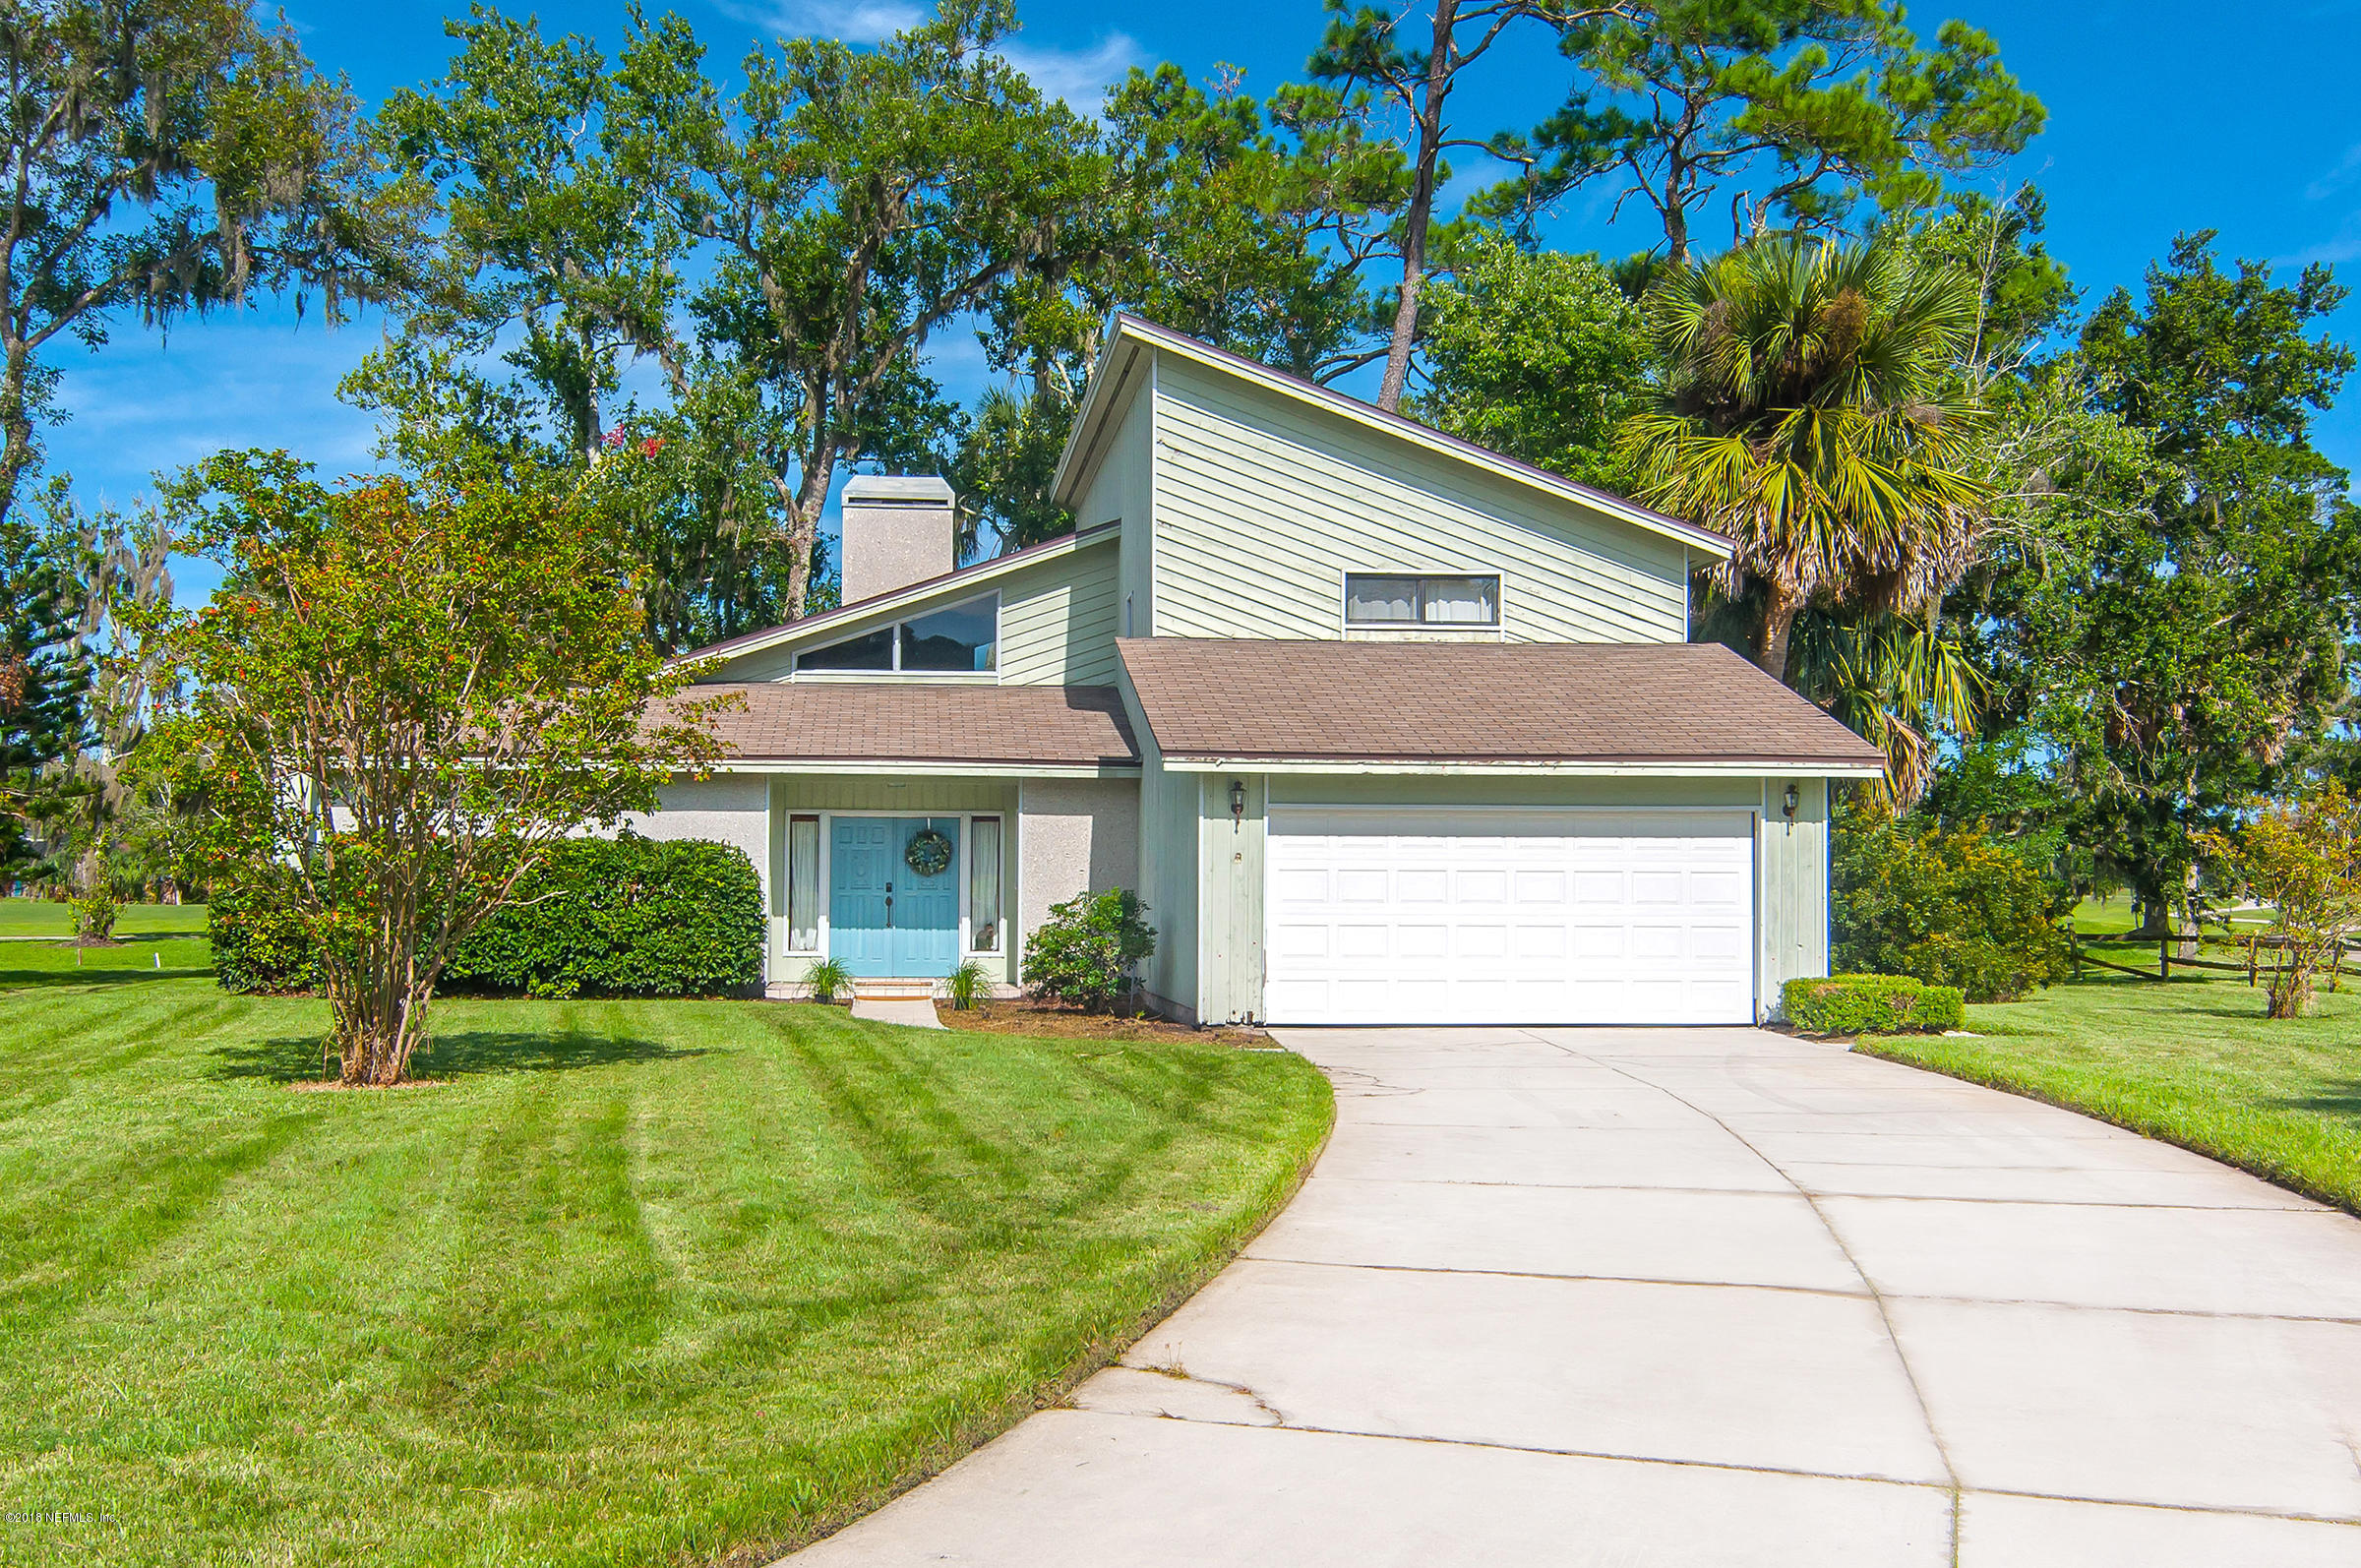 743 PALMERA, PONTE VEDRA BEACH, FLORIDA 32082, 3 Bedrooms Bedrooms, ,2 BathroomsBathrooms,Residential - single family,For sale,PALMERA,949084